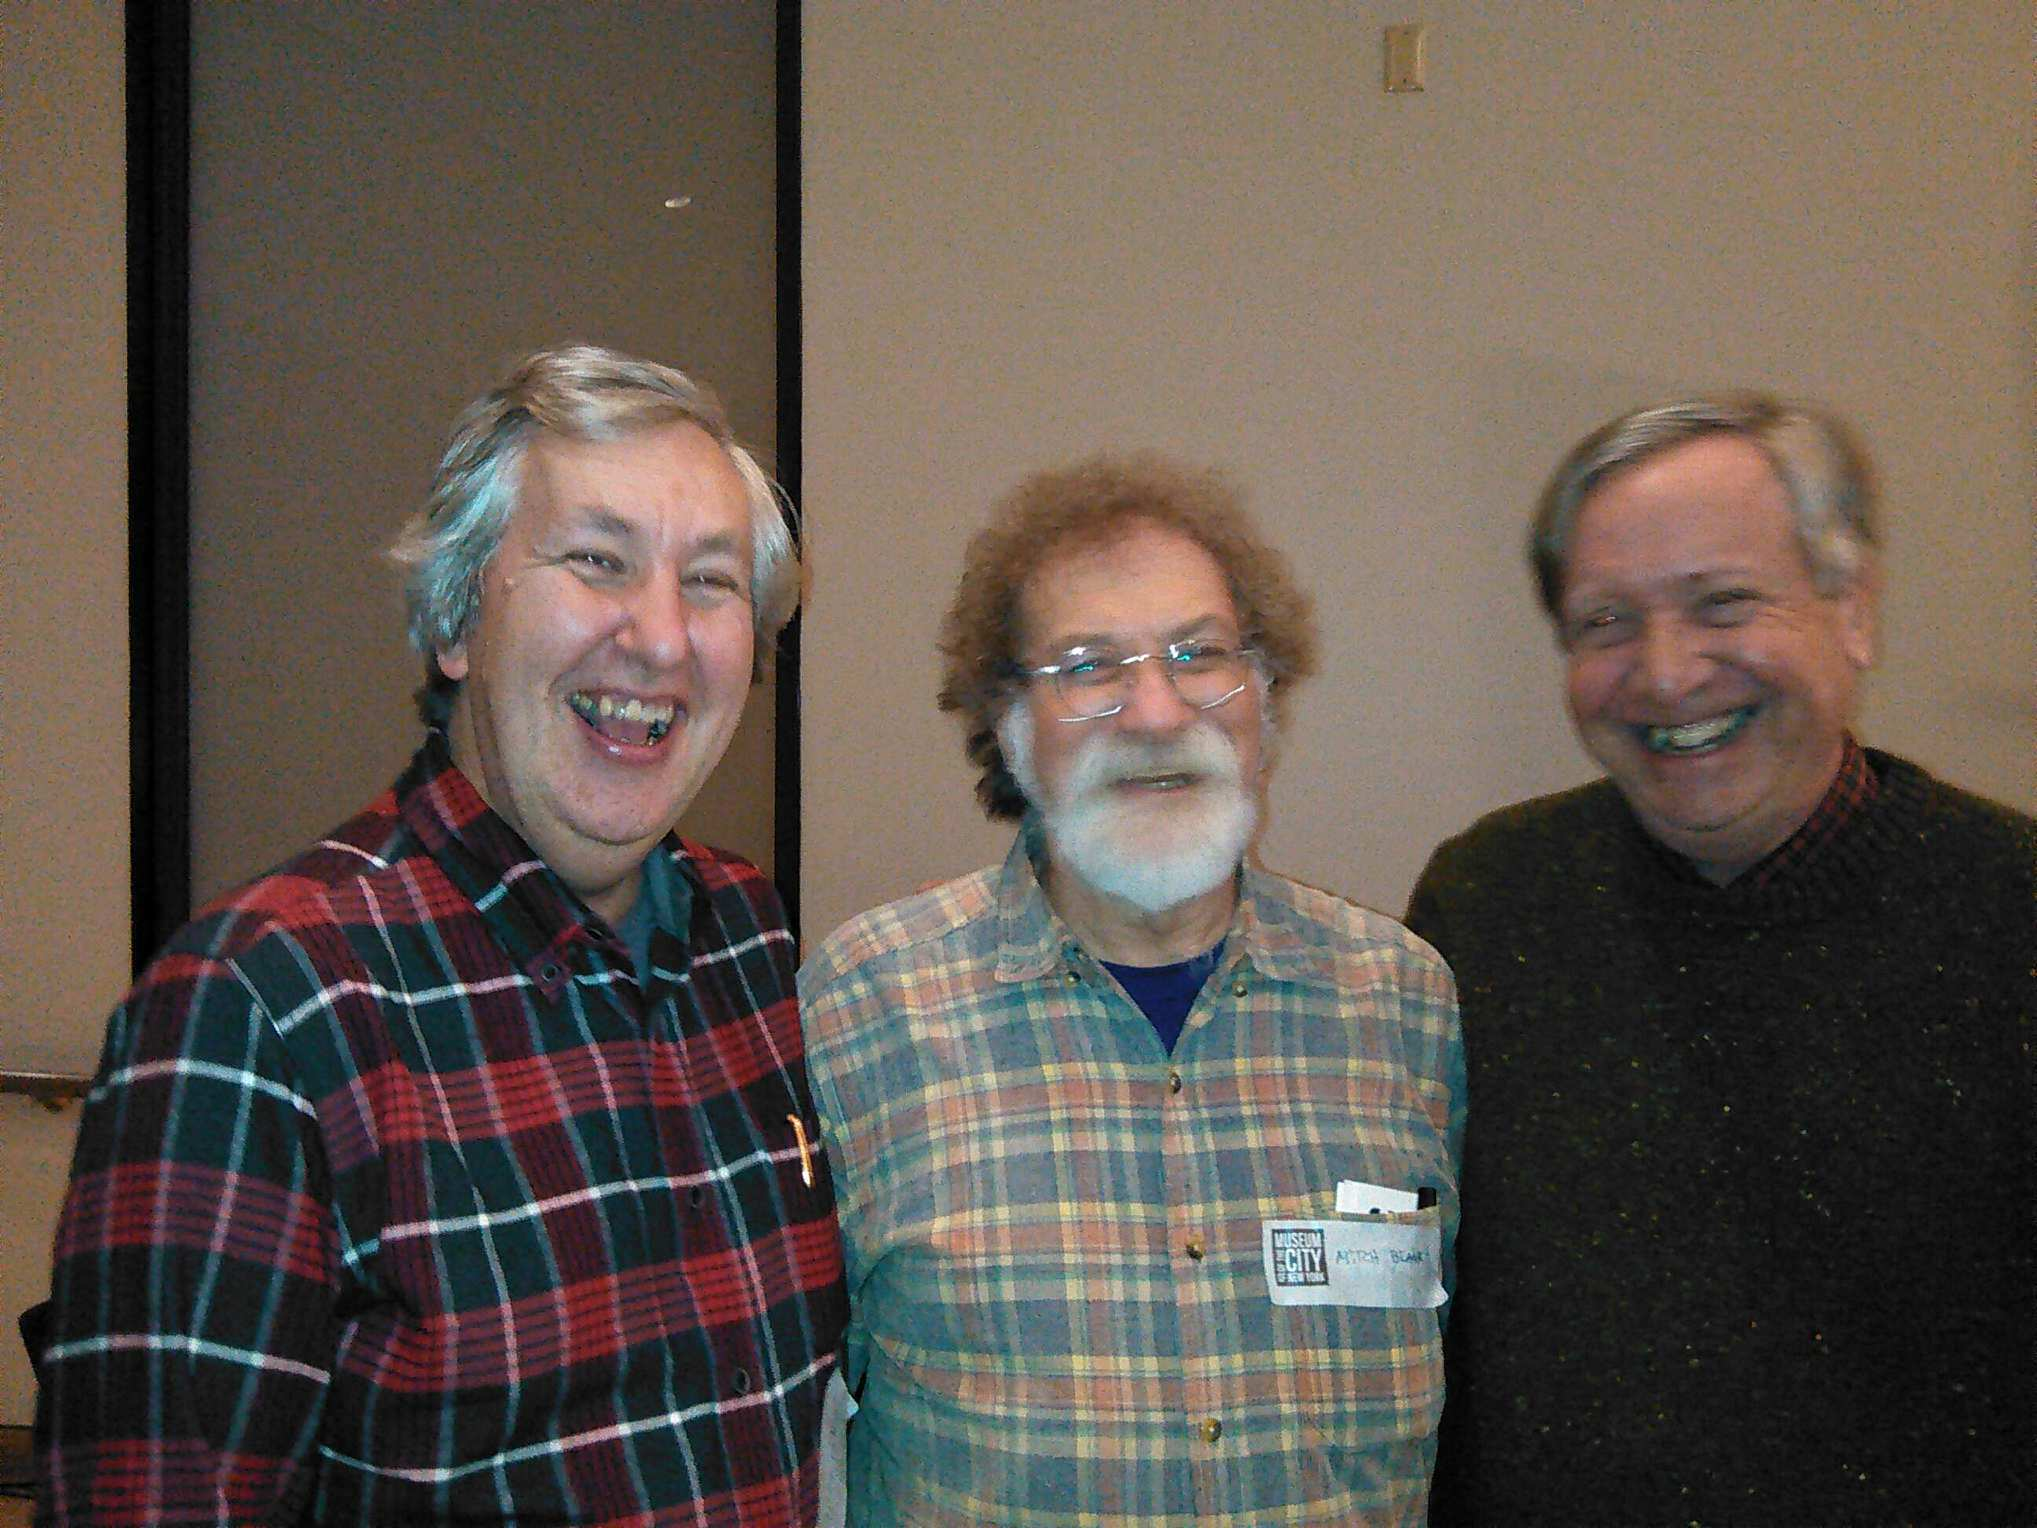 At the same MCNY event: Author Clinton Heylin (L), who wrote the seminal  Dylan Behind the Shades,  Dylan archivist Mitch Blank (C), and Princeton professor and author Sean Wilentz (R). Dylan famously met Beat poet Allen Ginsberg at a party at Wilentz' home in 1963; his father and uncle ran the legendary 8th Street Bookshop